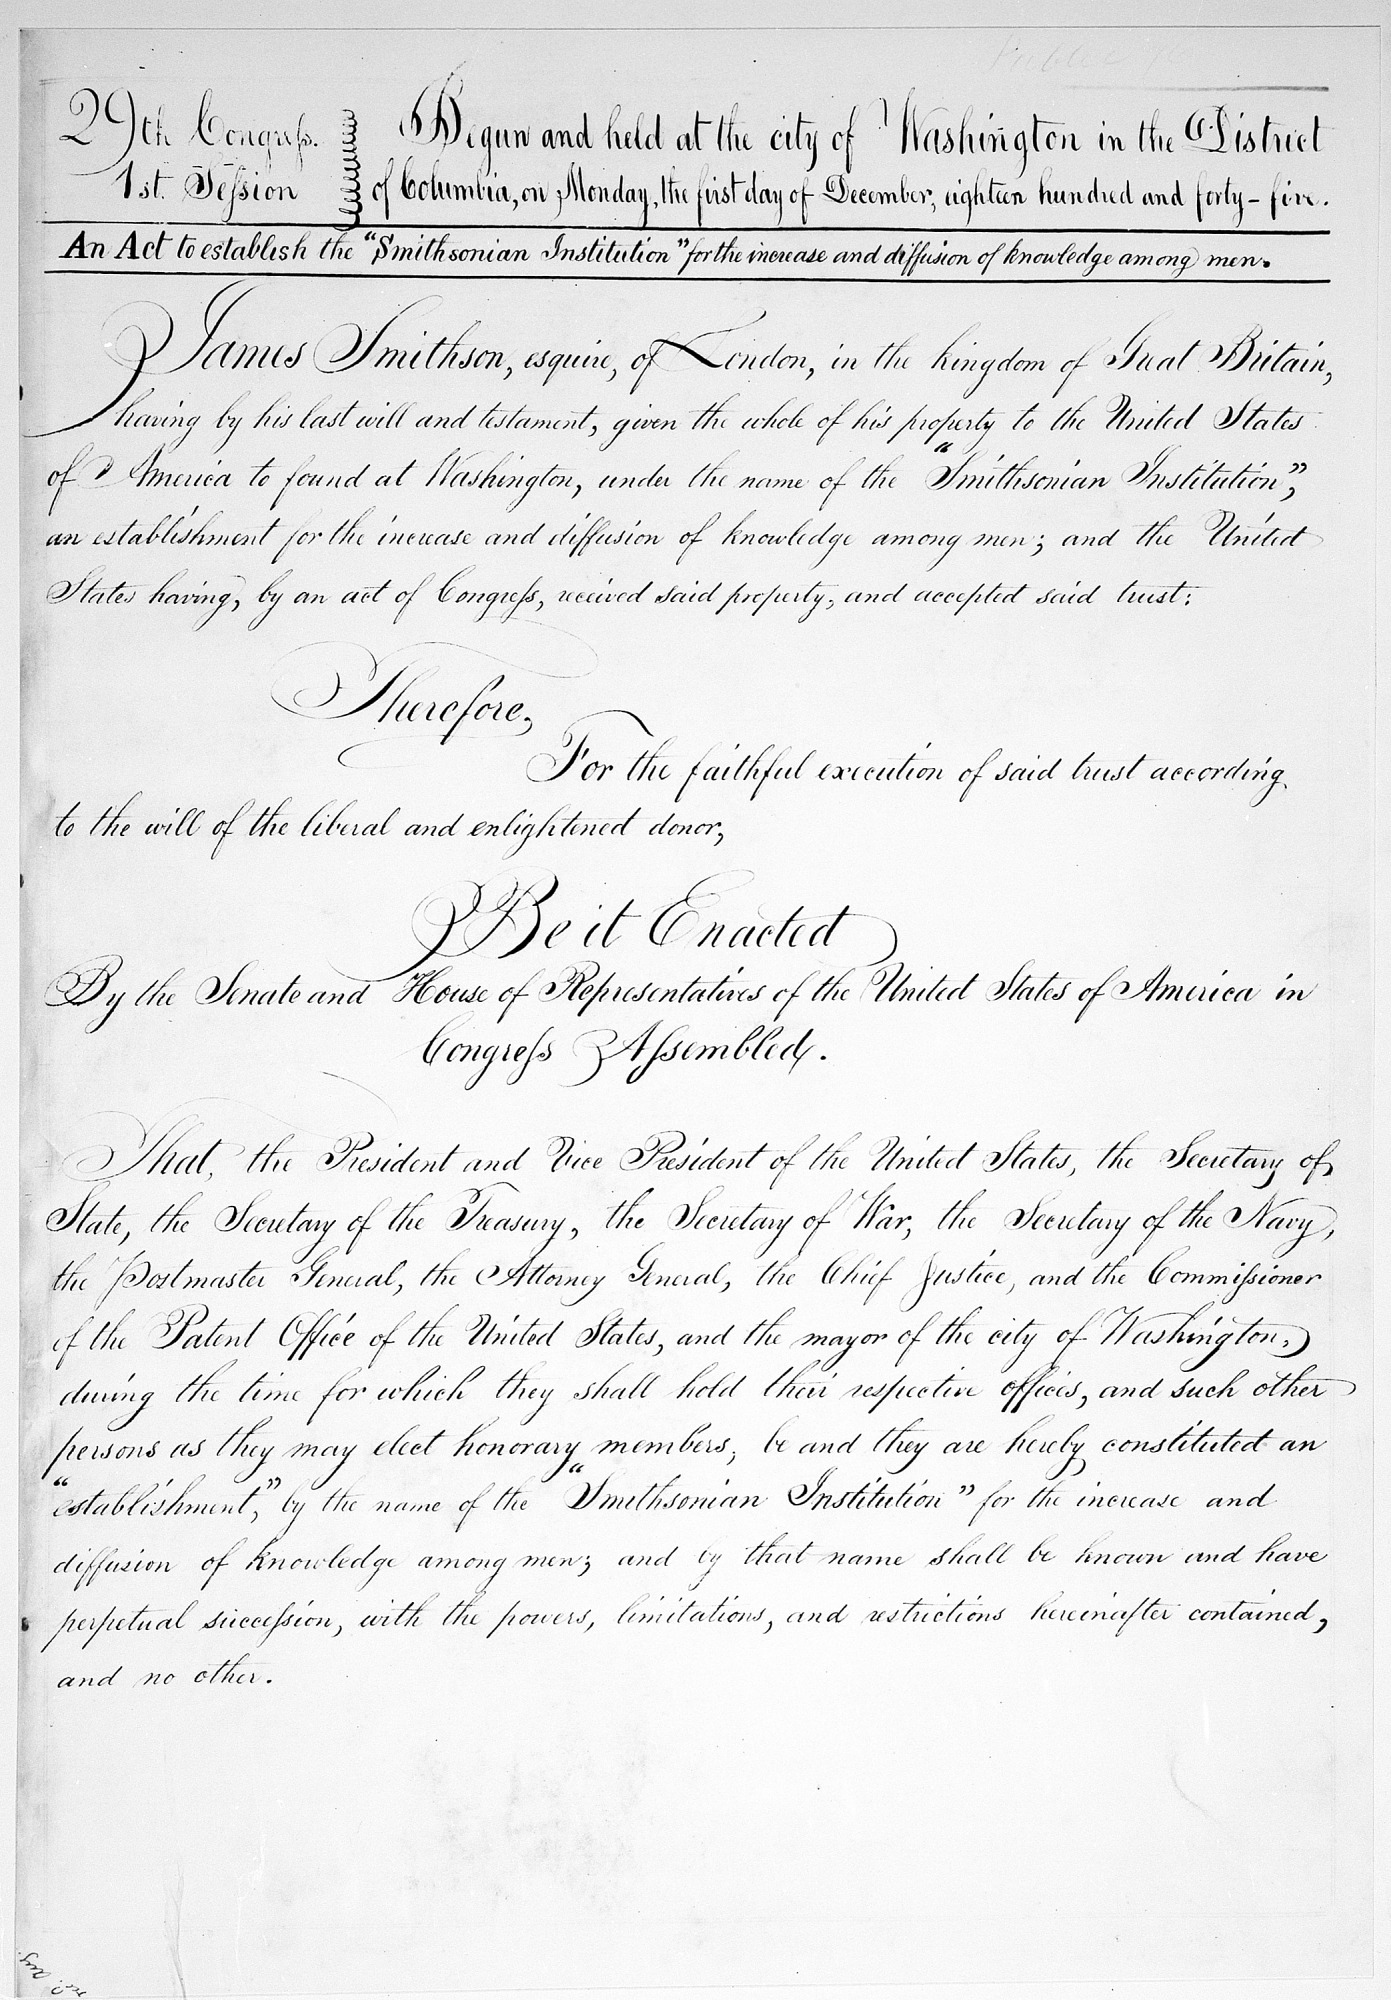 Image is of Act establishing the Smithsonian Institution, August 10, 1846, Smithsonian Institution Archives, negative number 96-1652.